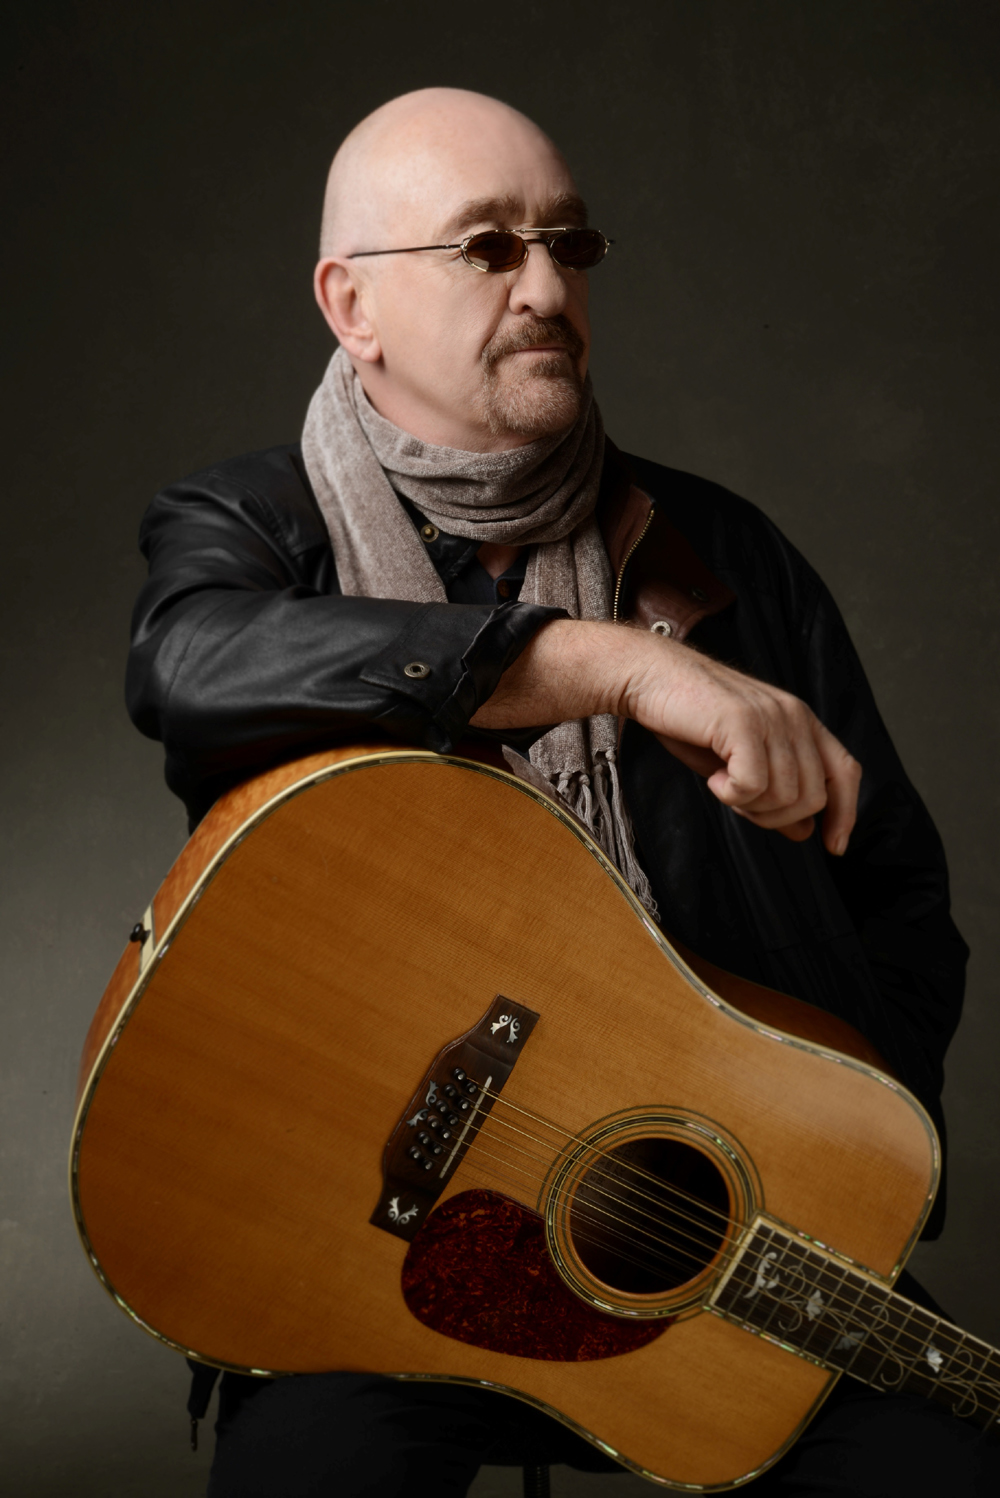 Dave Mason will be the opening act for Journey at the Santa Barbara Bowl on Thursday.